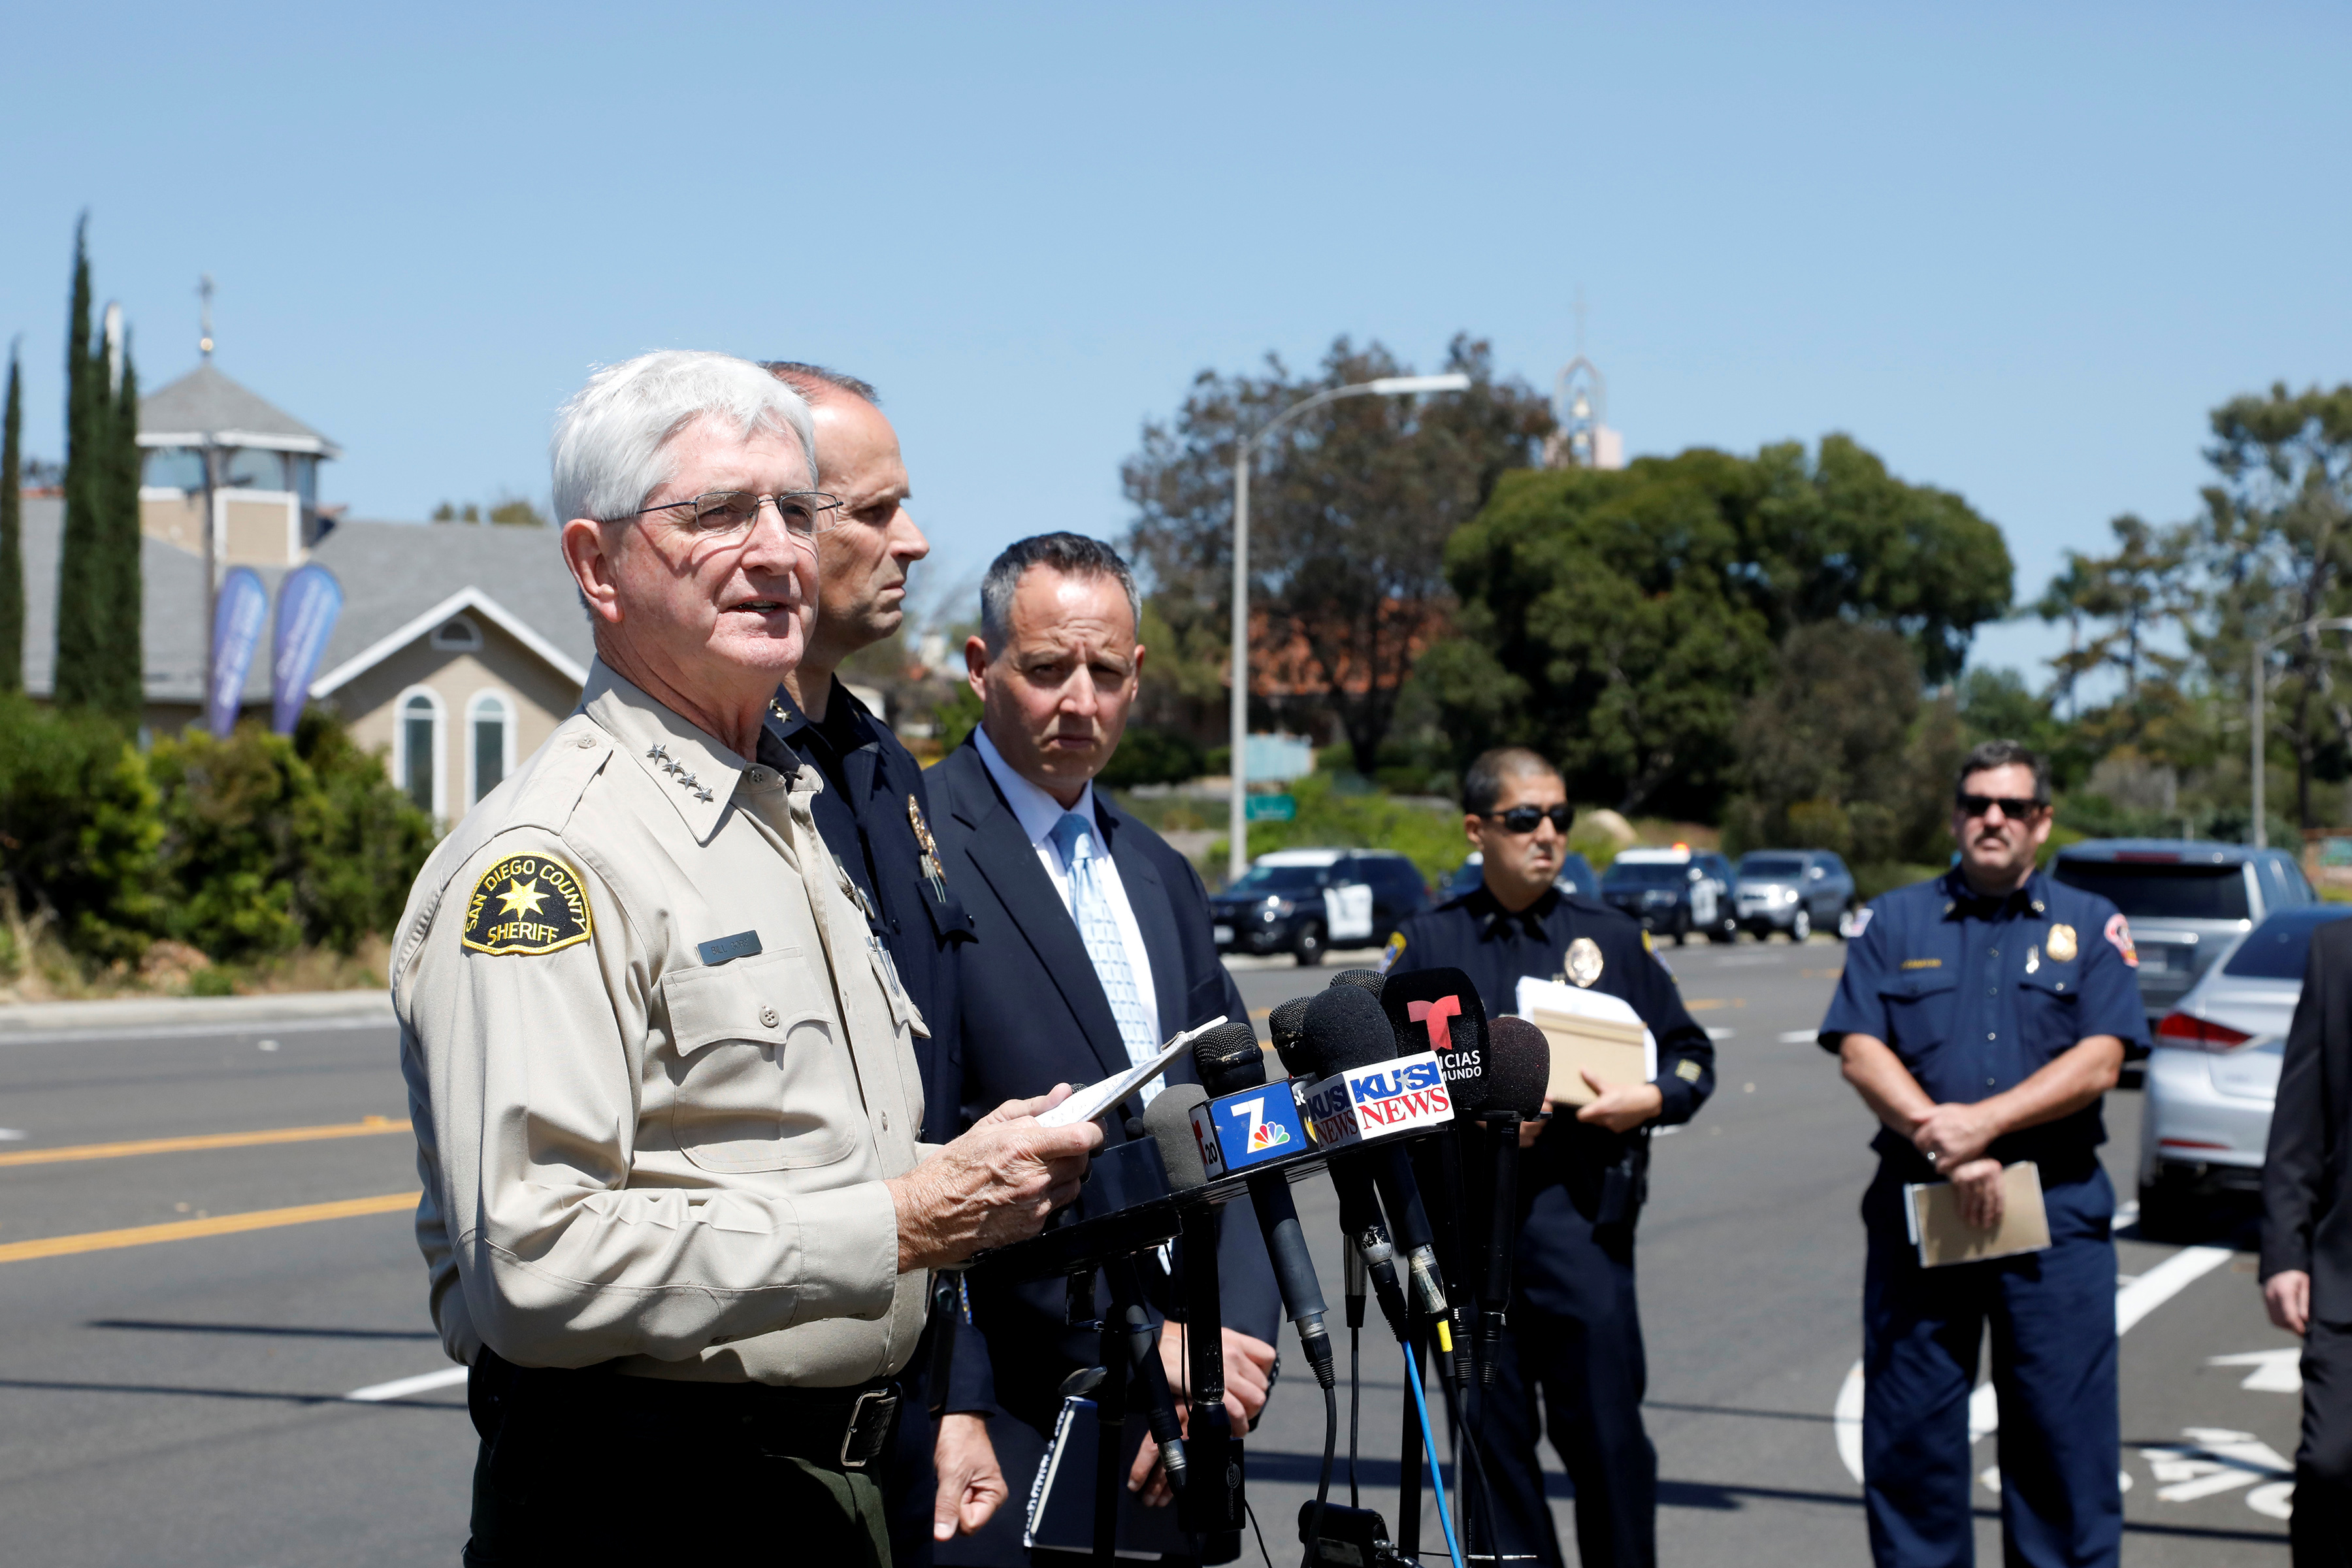 U.S: One Dead After Man Opens Fire on Worshippers in California Synagogue